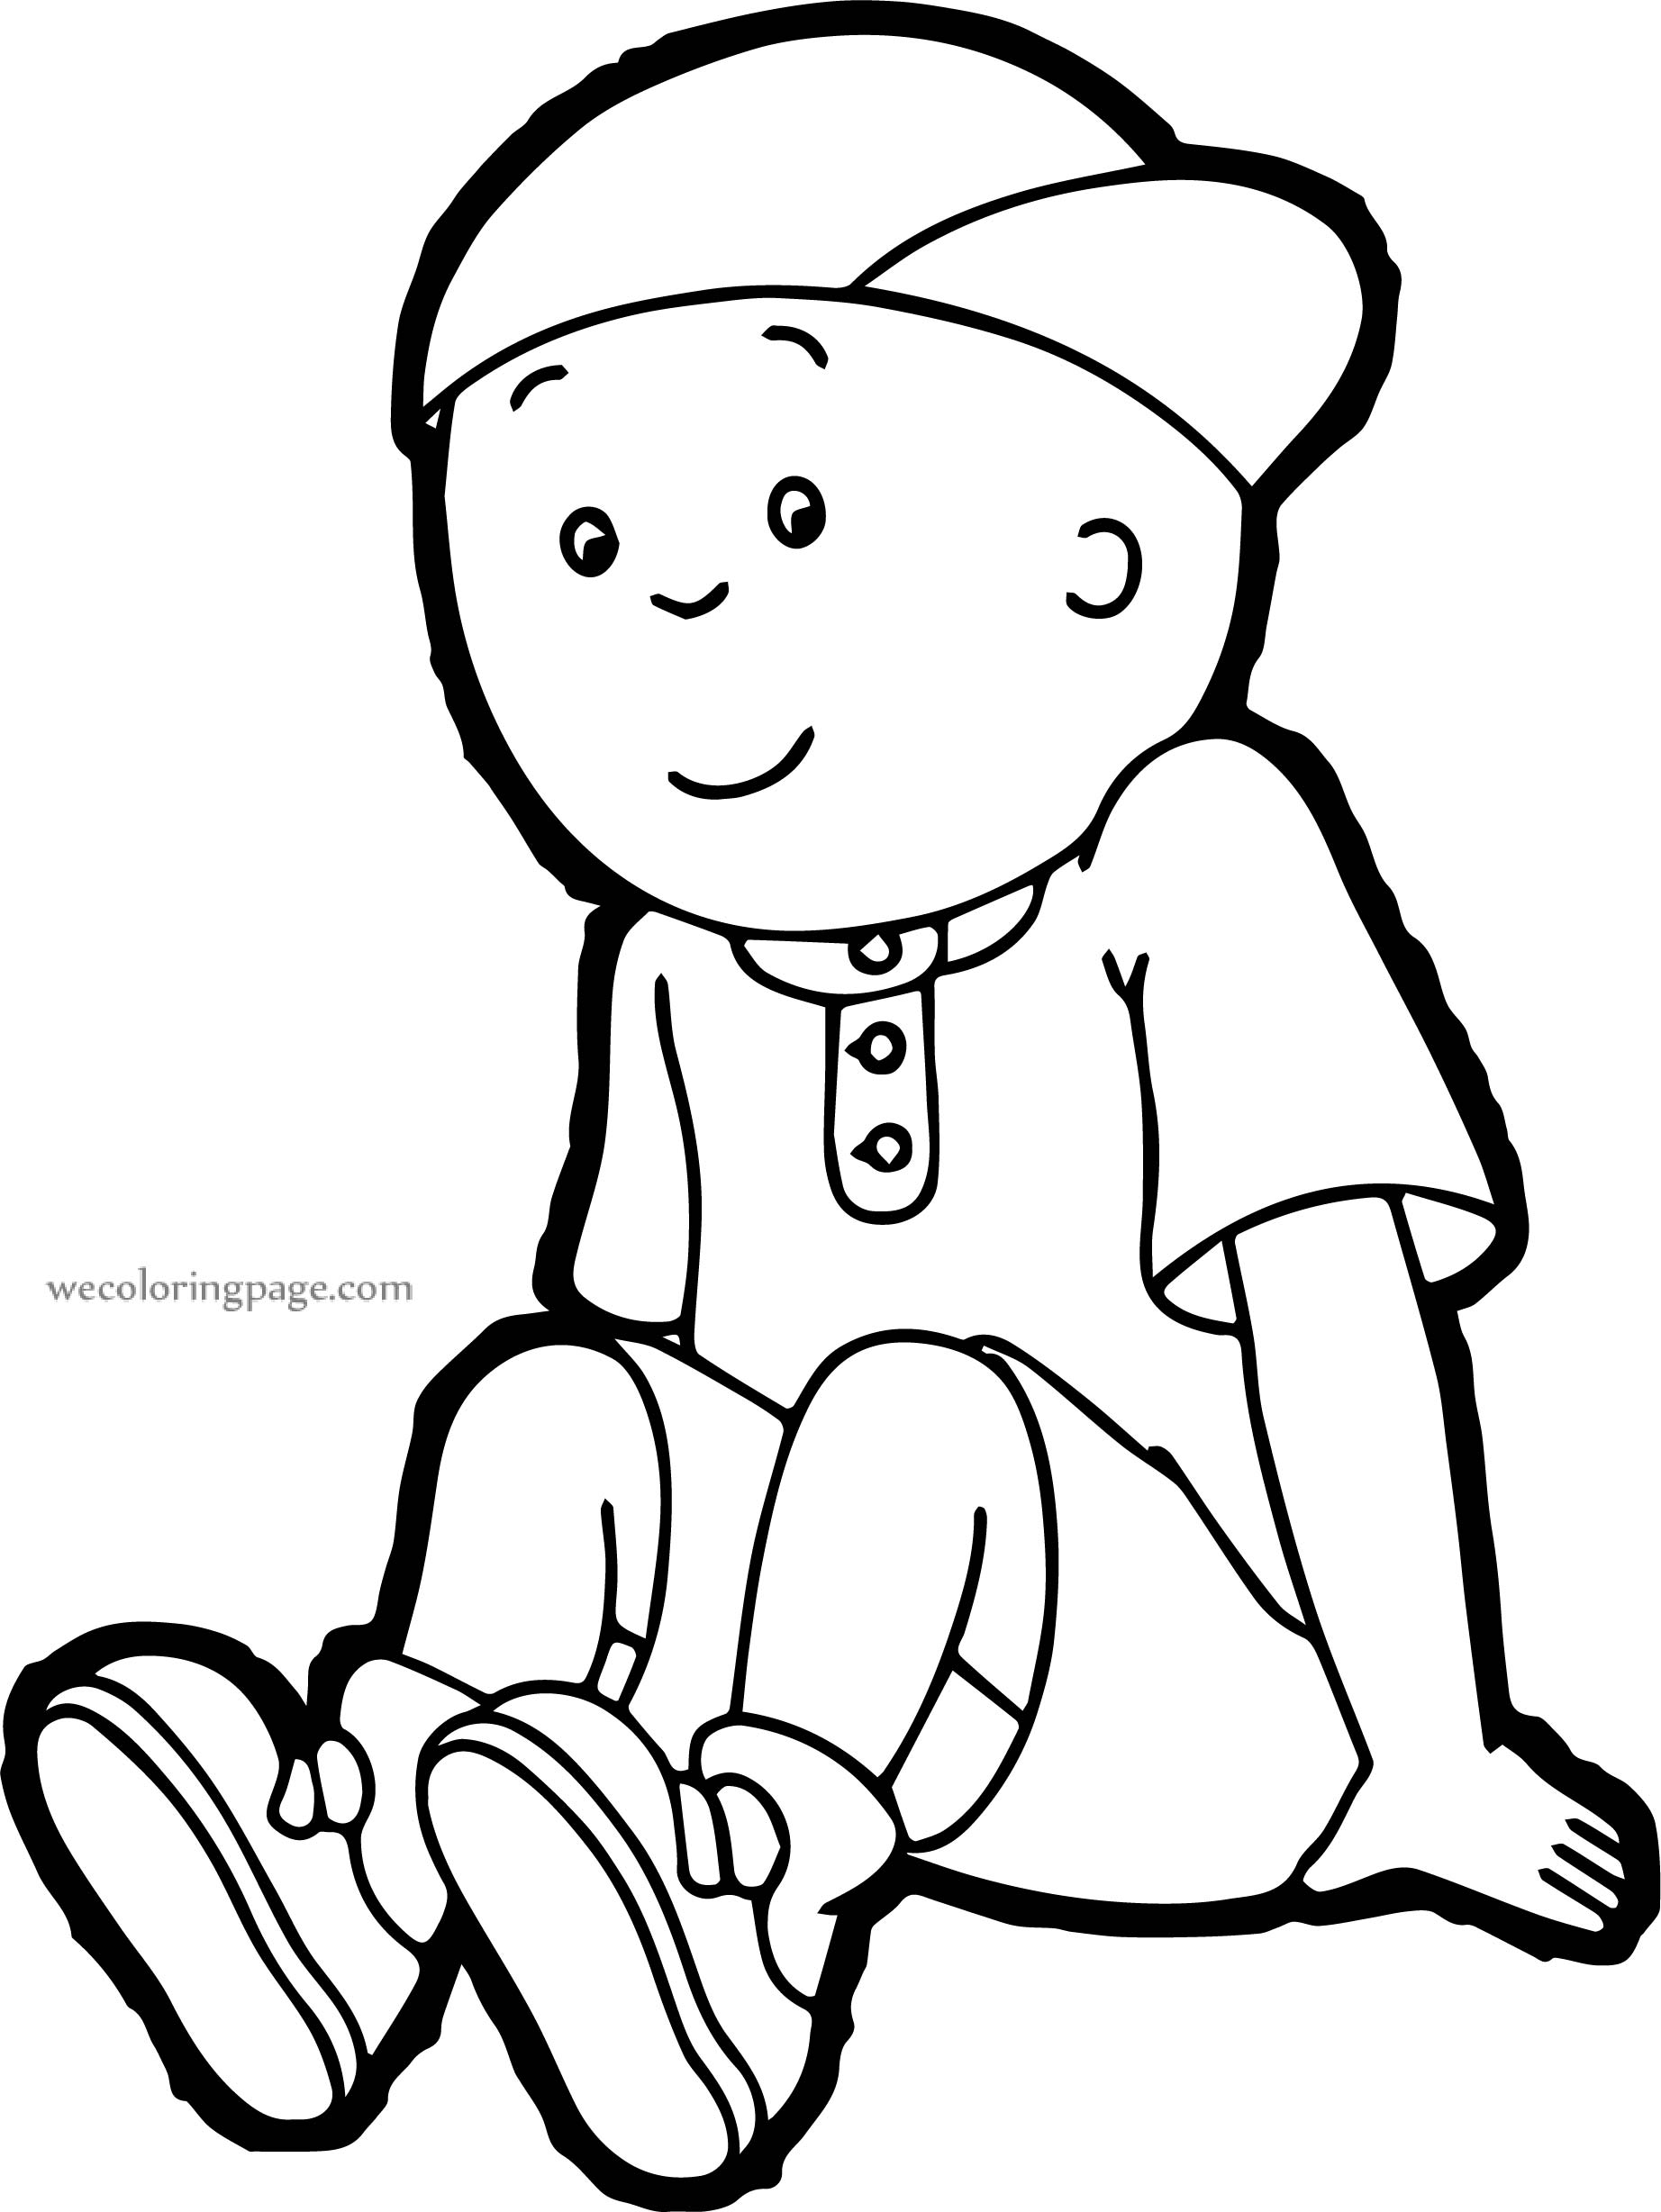 Staying Caillou Coloring Page